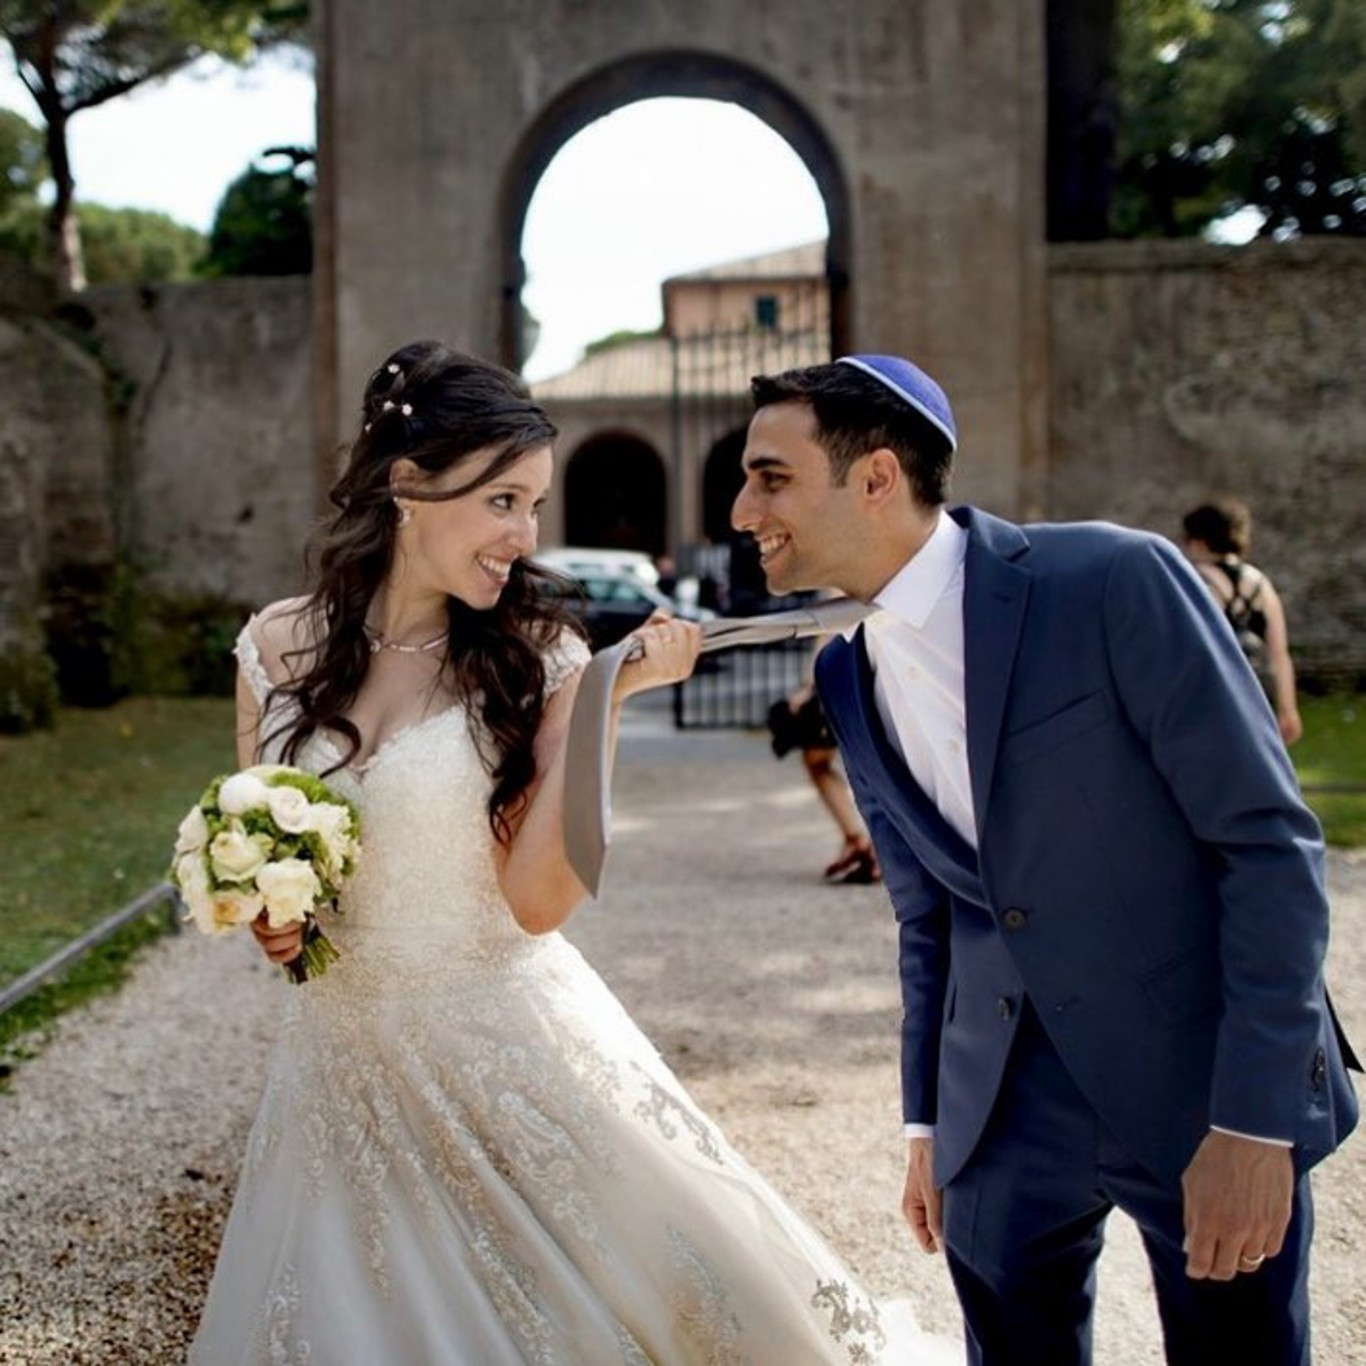 7422778013433950588-n-Wedding-Planner-Designer-Rome-cinzia-ciani-weddings-events